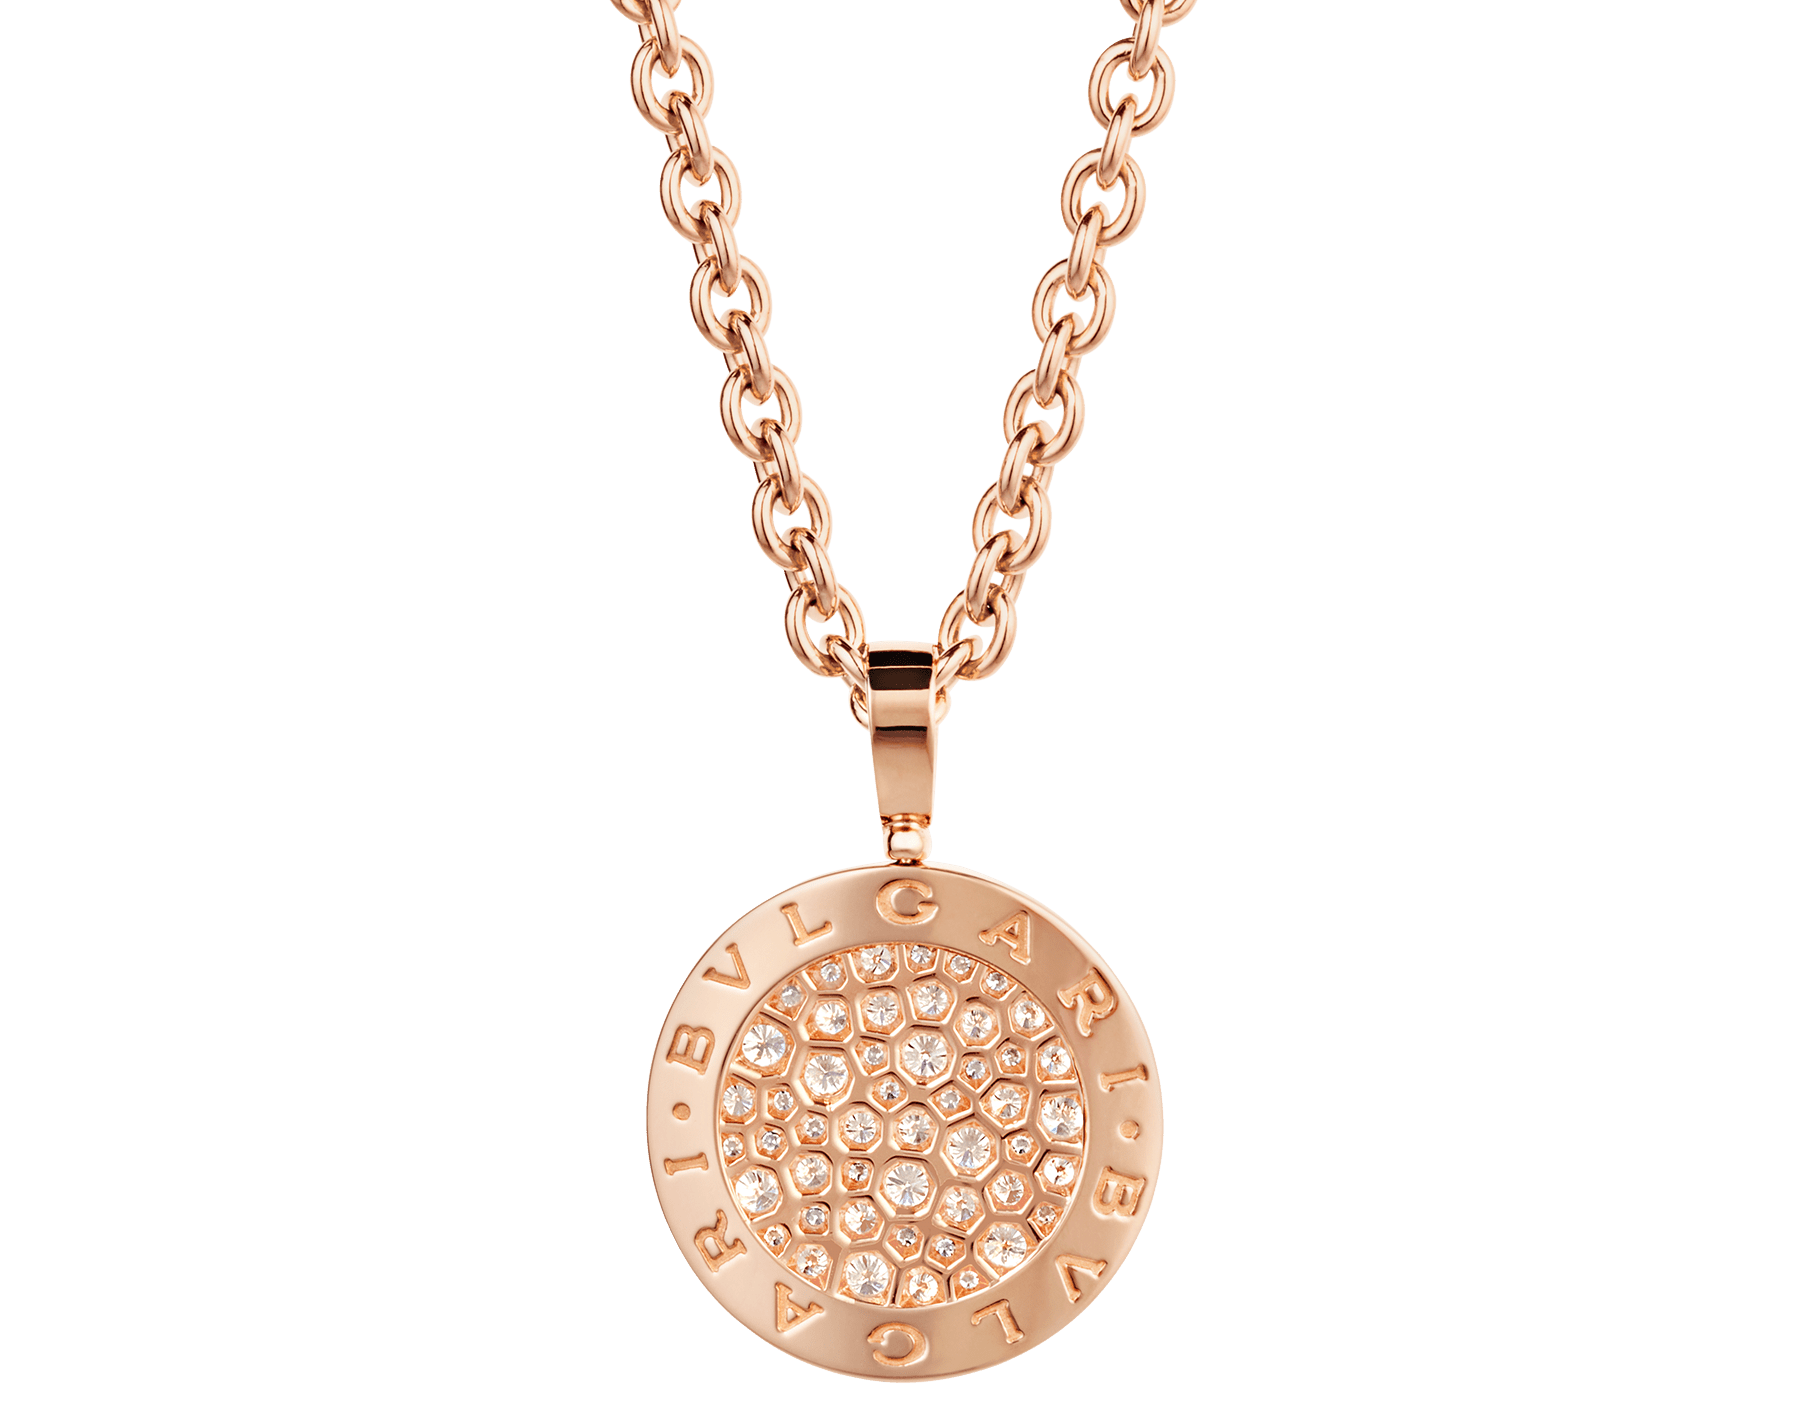 BVLGARI BVLGARI necklace with 18 kt rose gold chain and 18 kt rose gold pendant set with pavé diamonds 345277 image 3